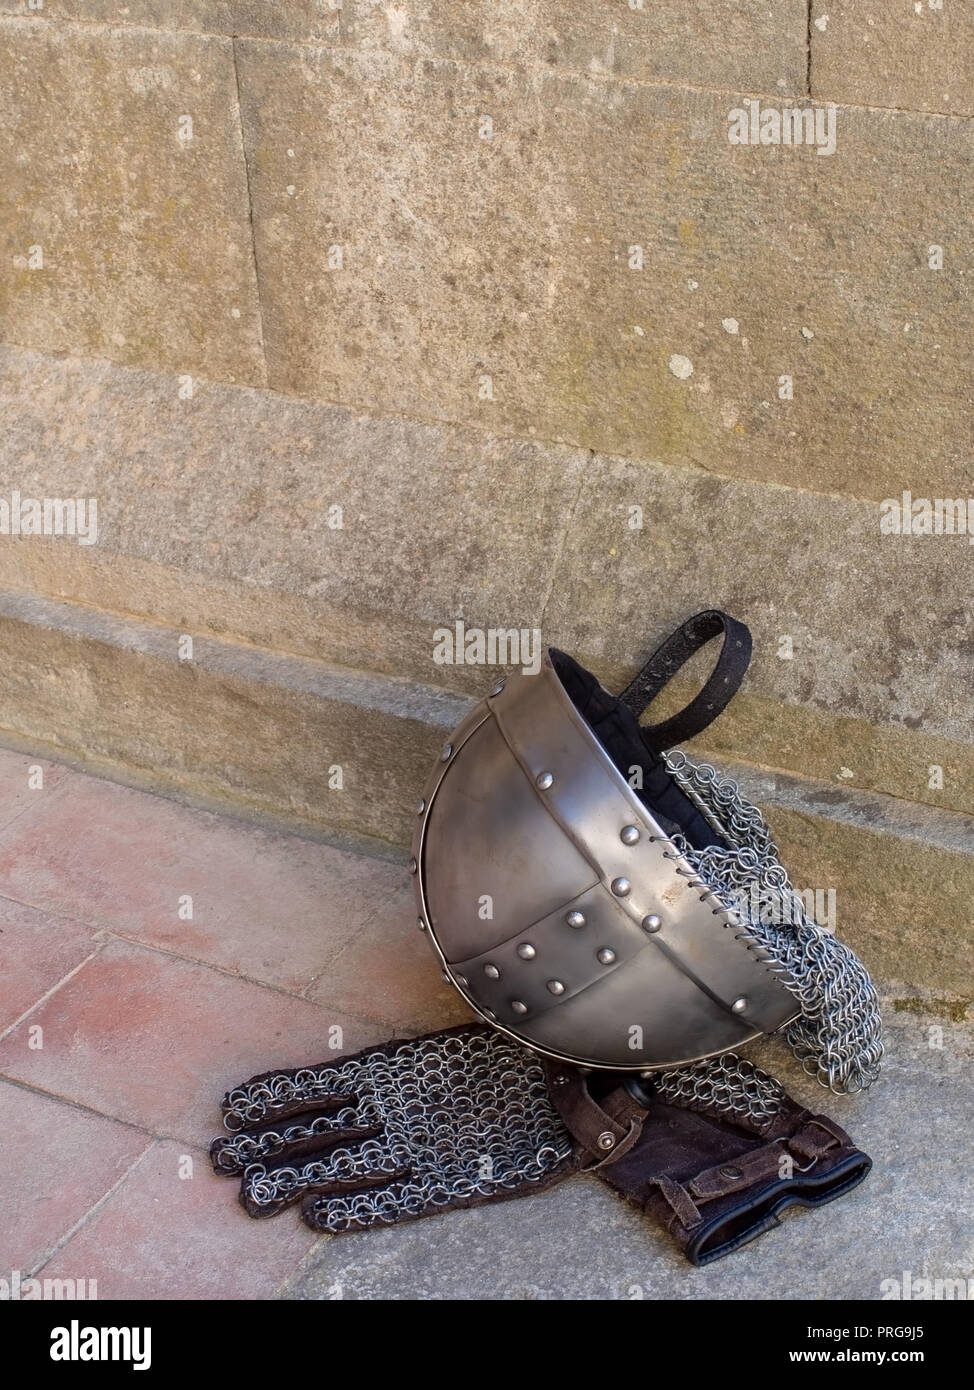 Medieval, mediaeval knight helmet and chain mail gloves. - Stock Image